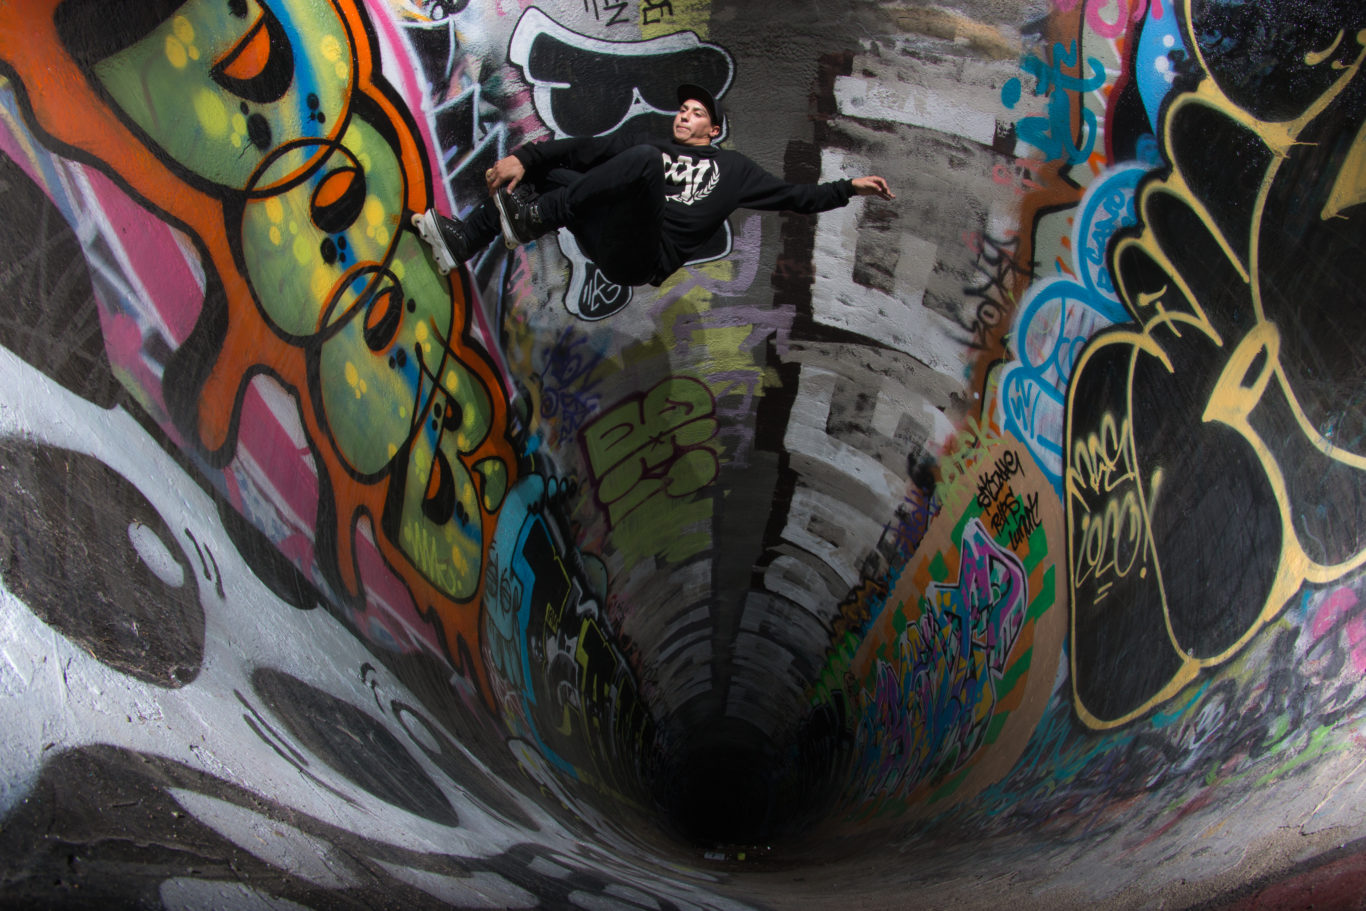 Victor Arias - Wall Stall - Photograph by Erick Garcia